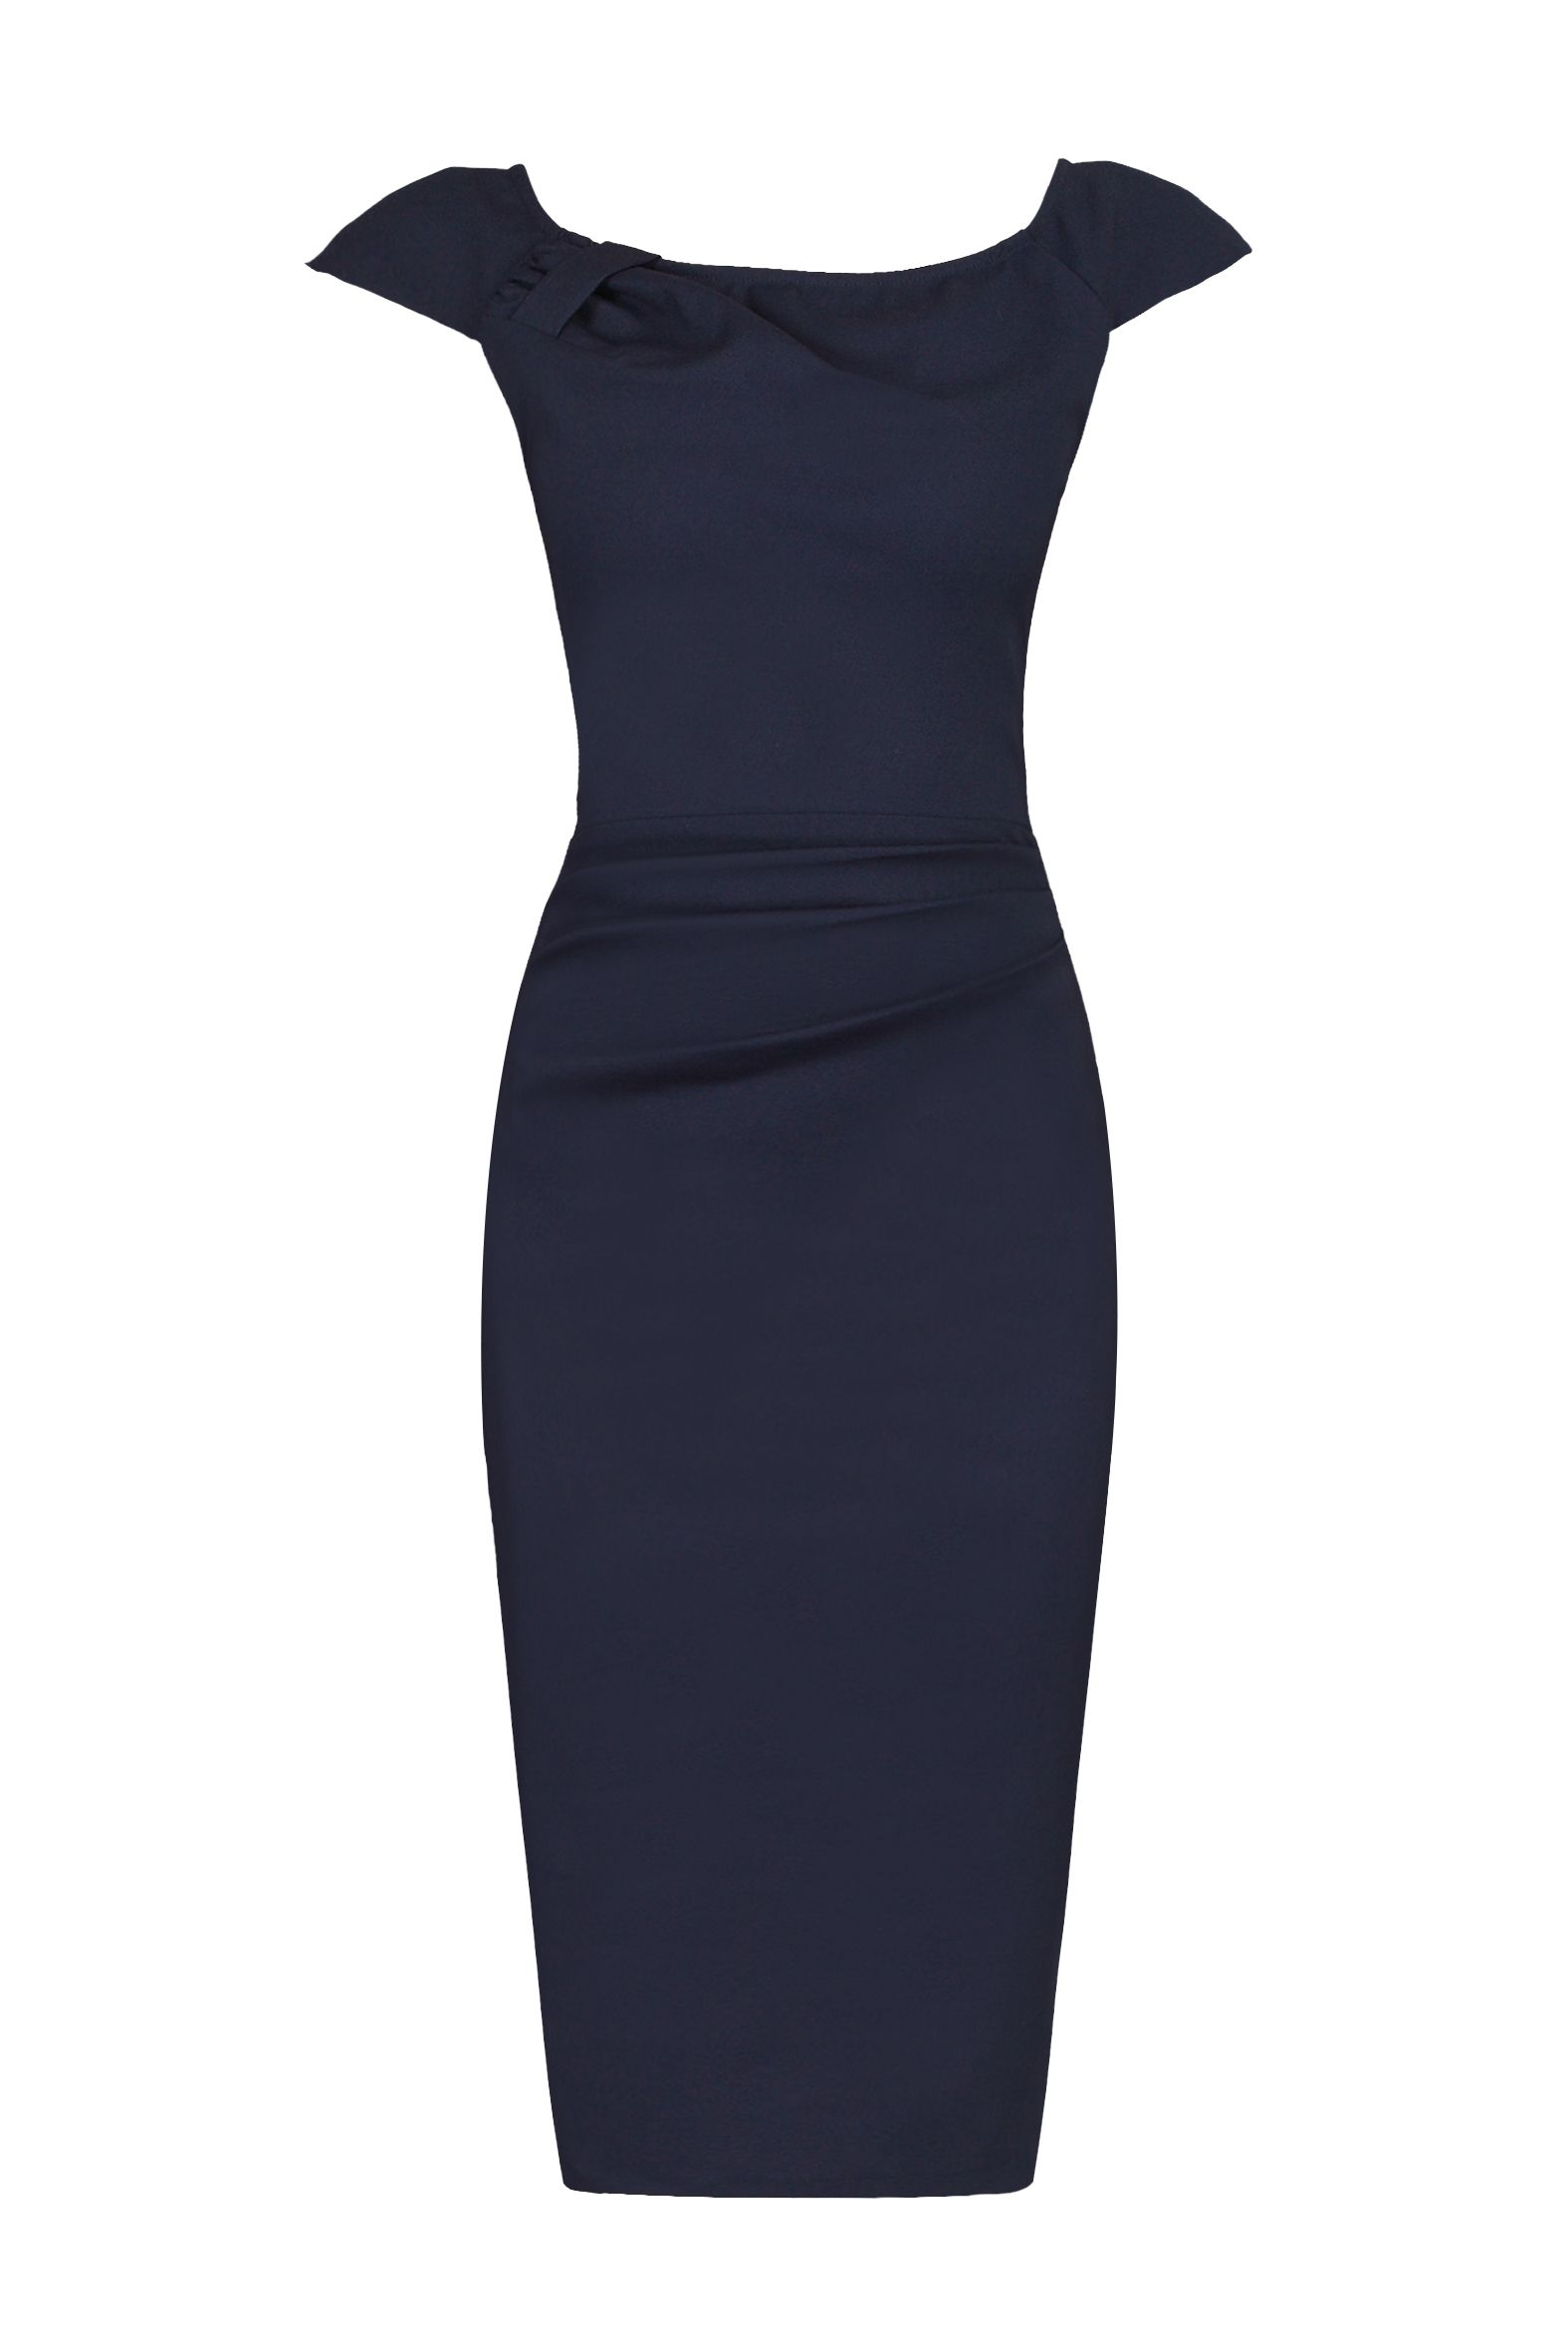 Jolie Moi Ruched 40s Wiggle Dress, Blue